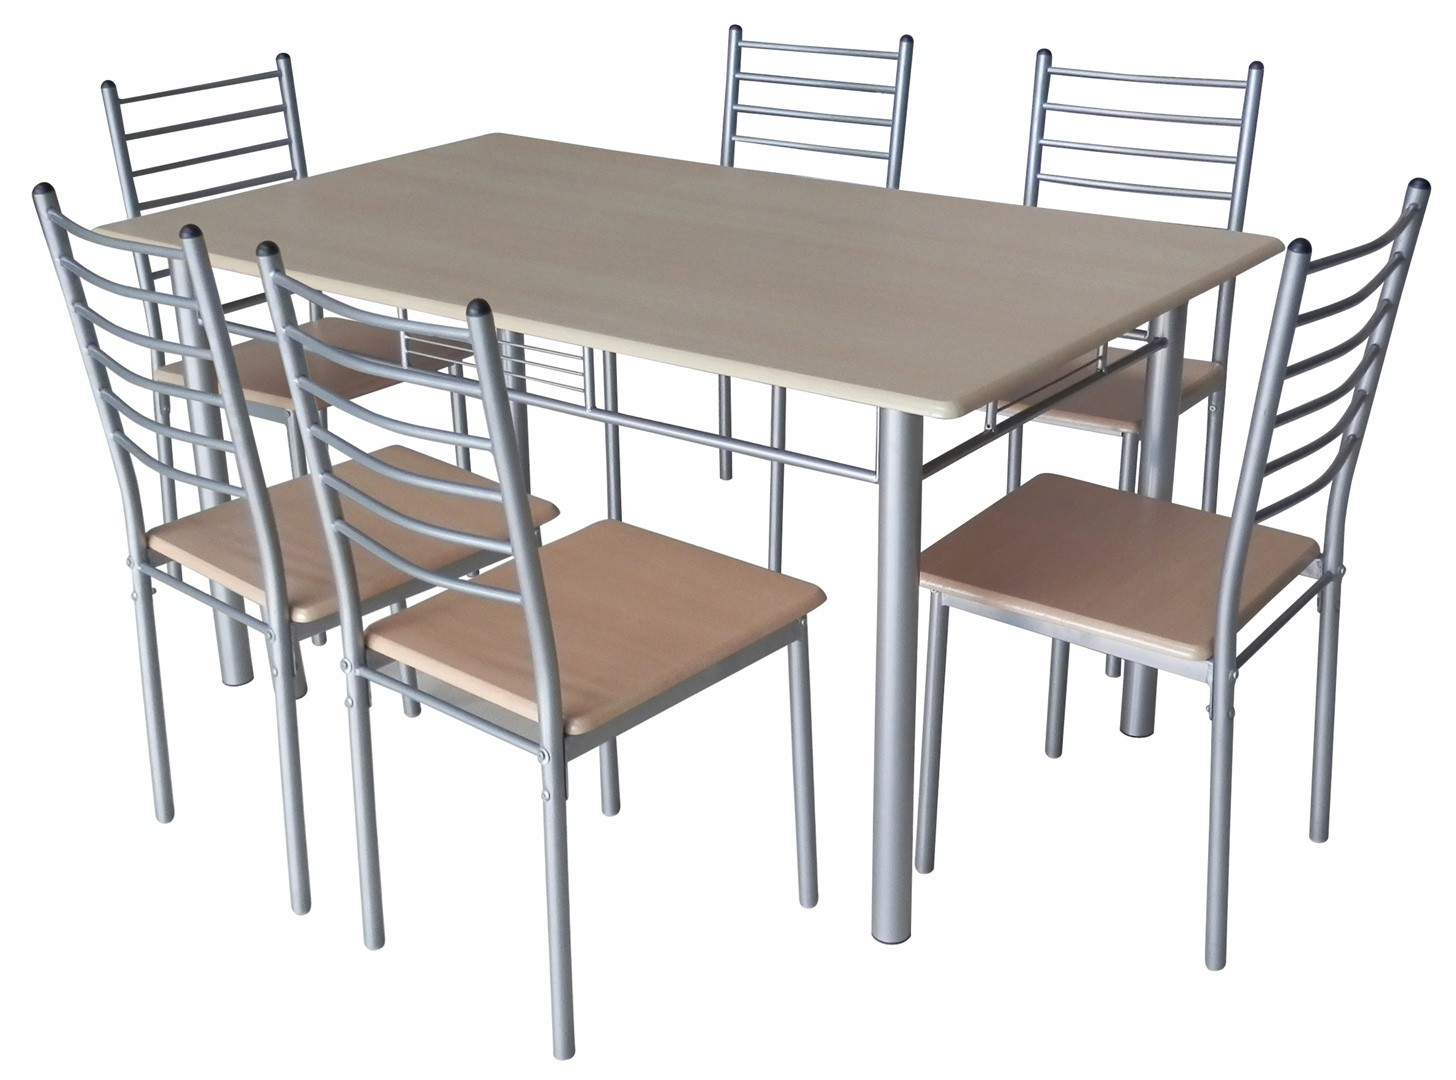 Ensemble table et chaises de cuisine but chaise id es for Ensemble de table de cuisine